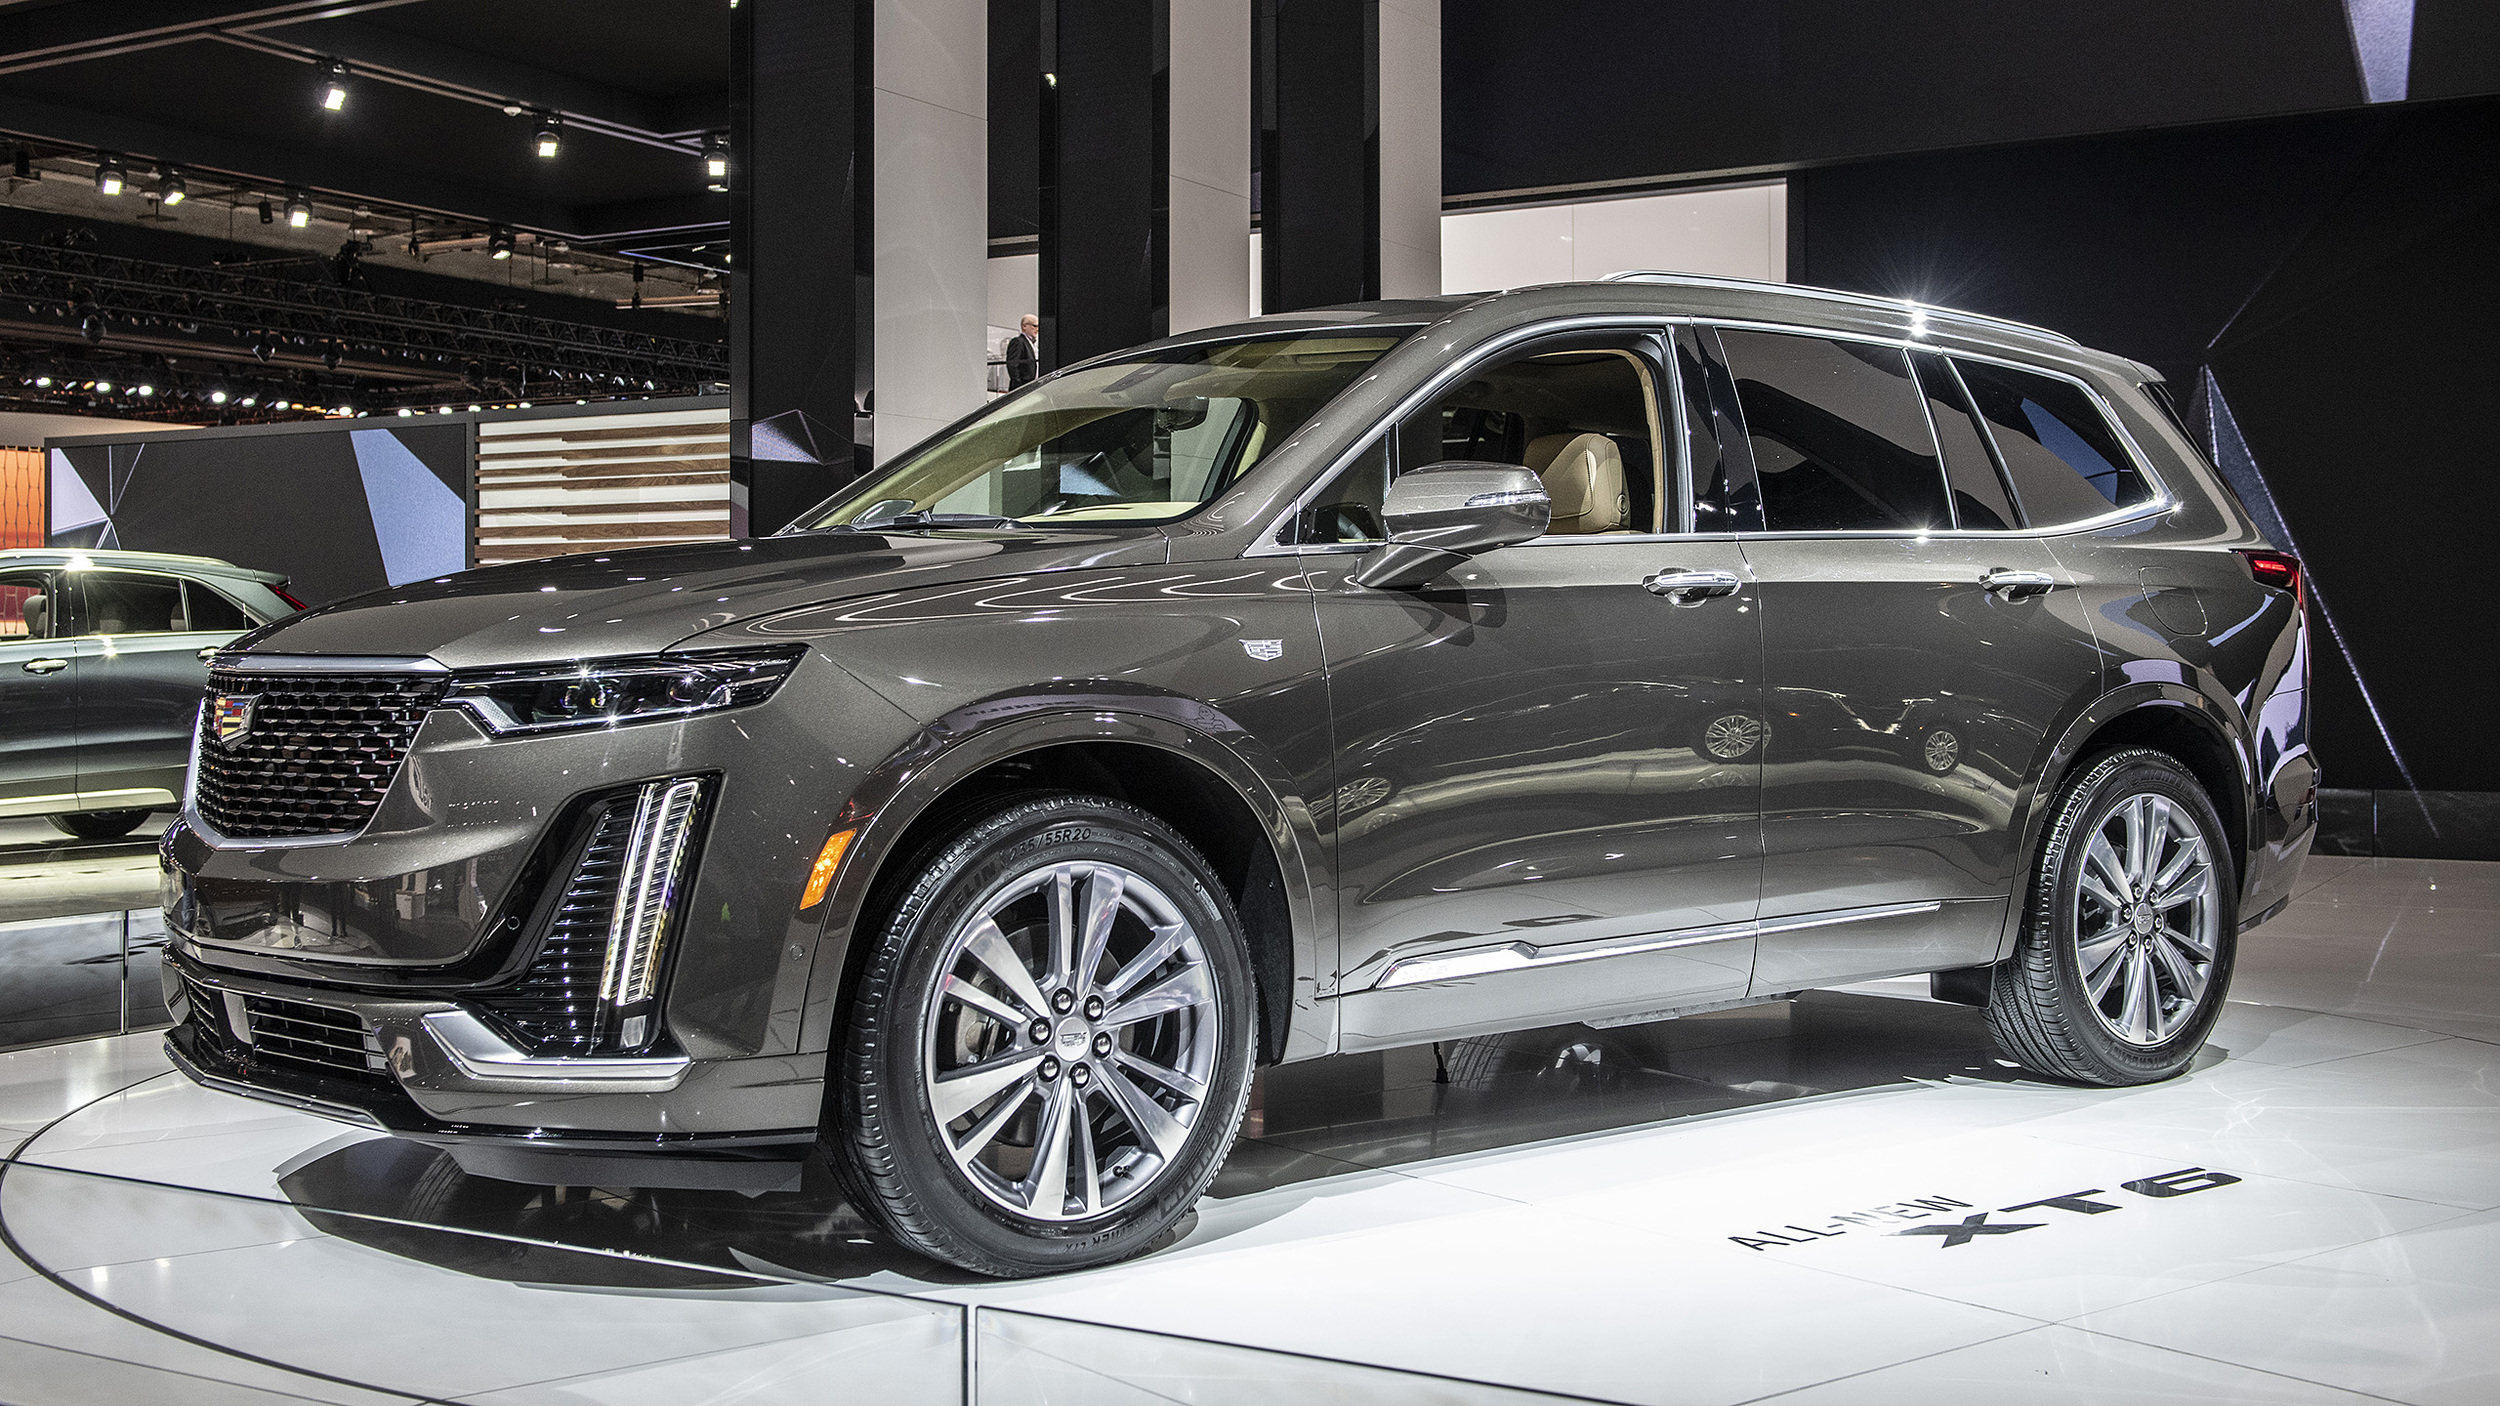 Best Awd Sports Cars >> 2020 Cadillac XT6 crossover is priced from $53,690 | Autoblog